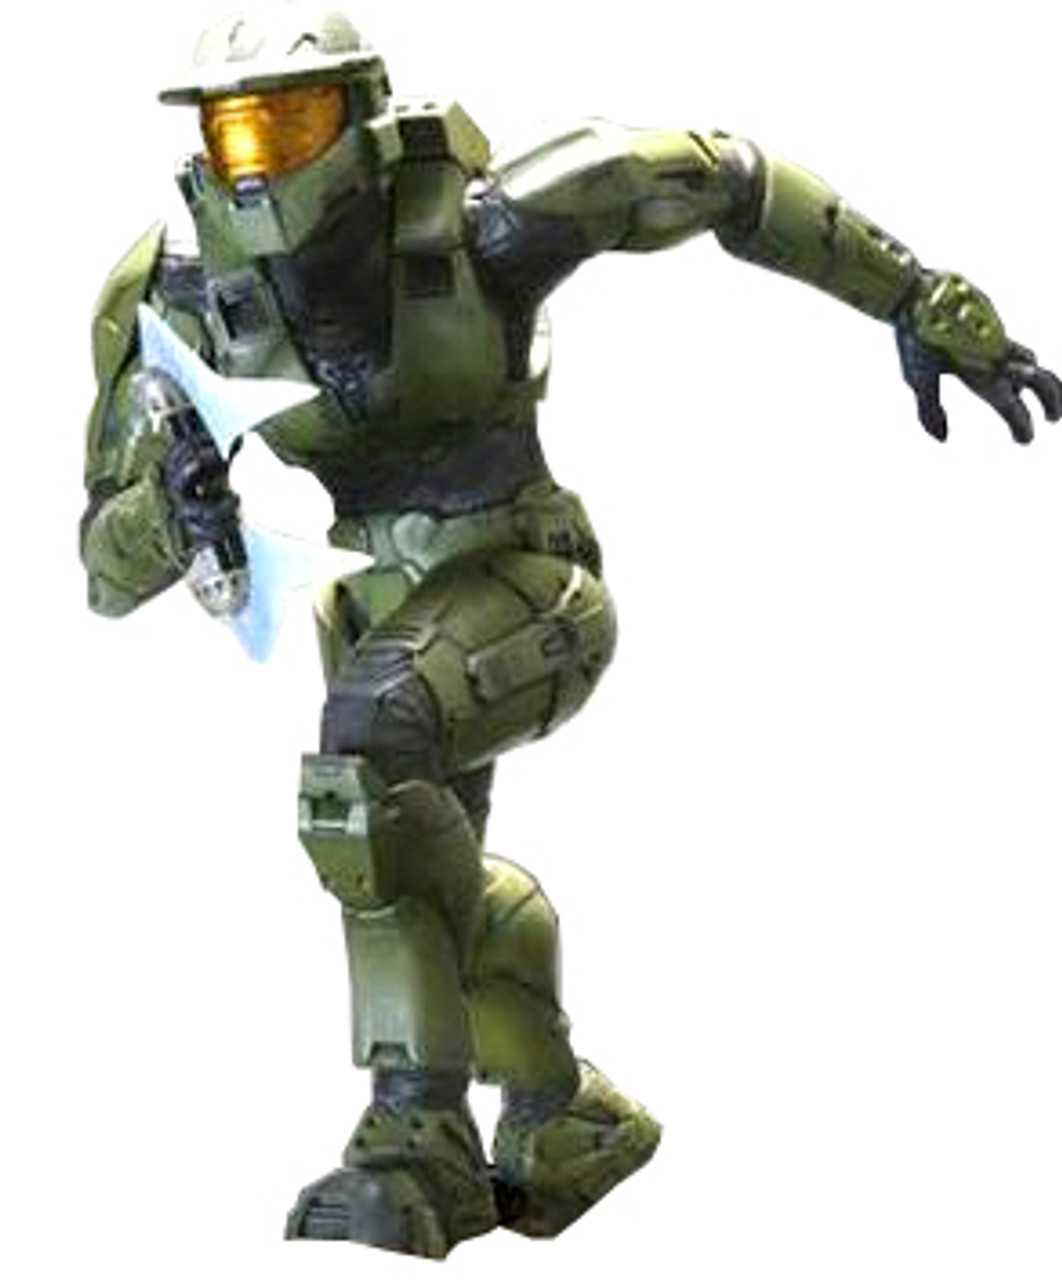 Halo 3 Master Chief 12-Inch Vinyl Model Figure